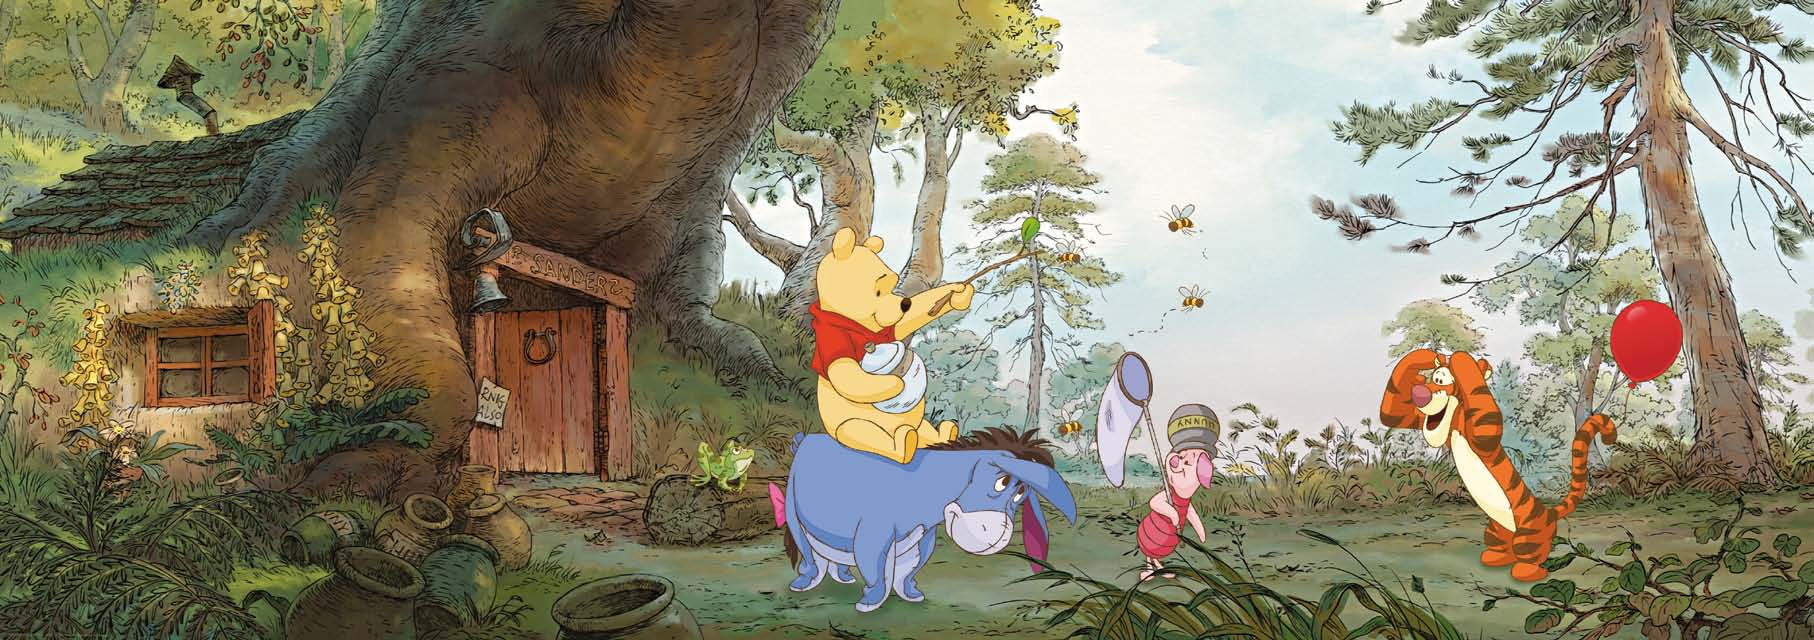 Poster mural la maison de Winnie l'ourson - Panoramique Disney - KOMAR